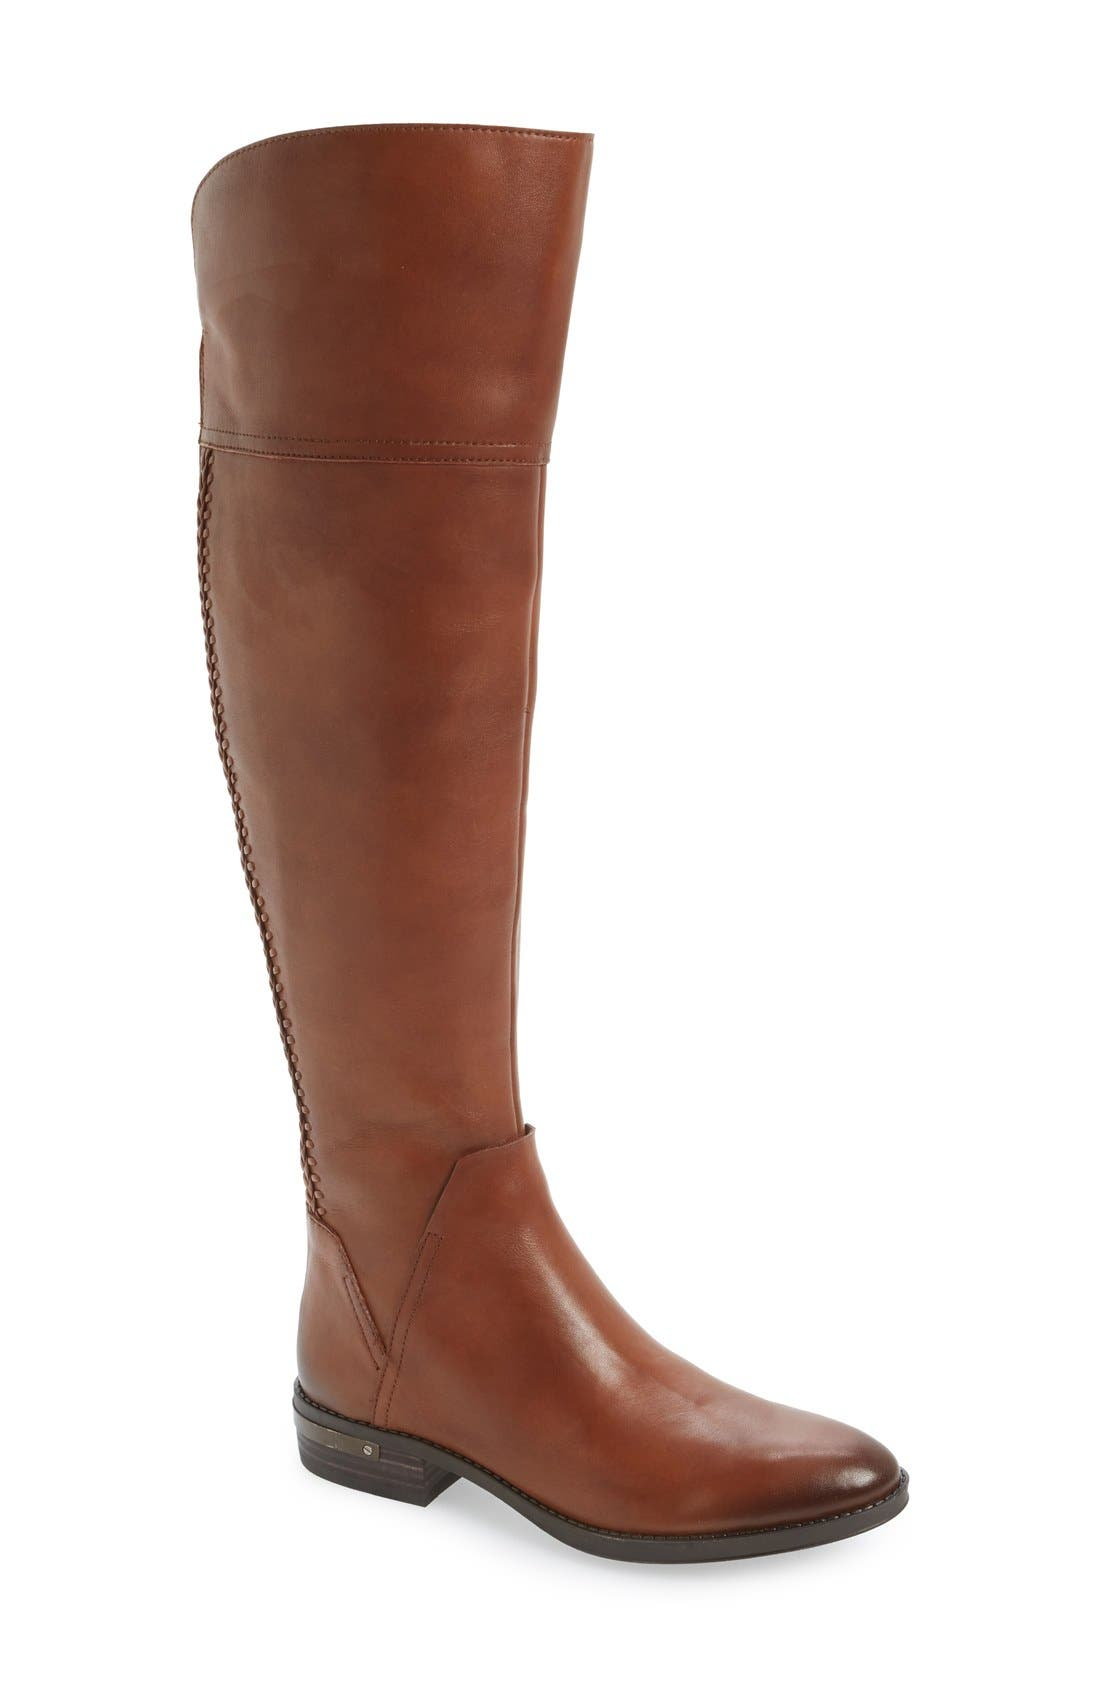 'Pedra' Over the Knee Boot,                         Main,                         color, Gingerbread Leather